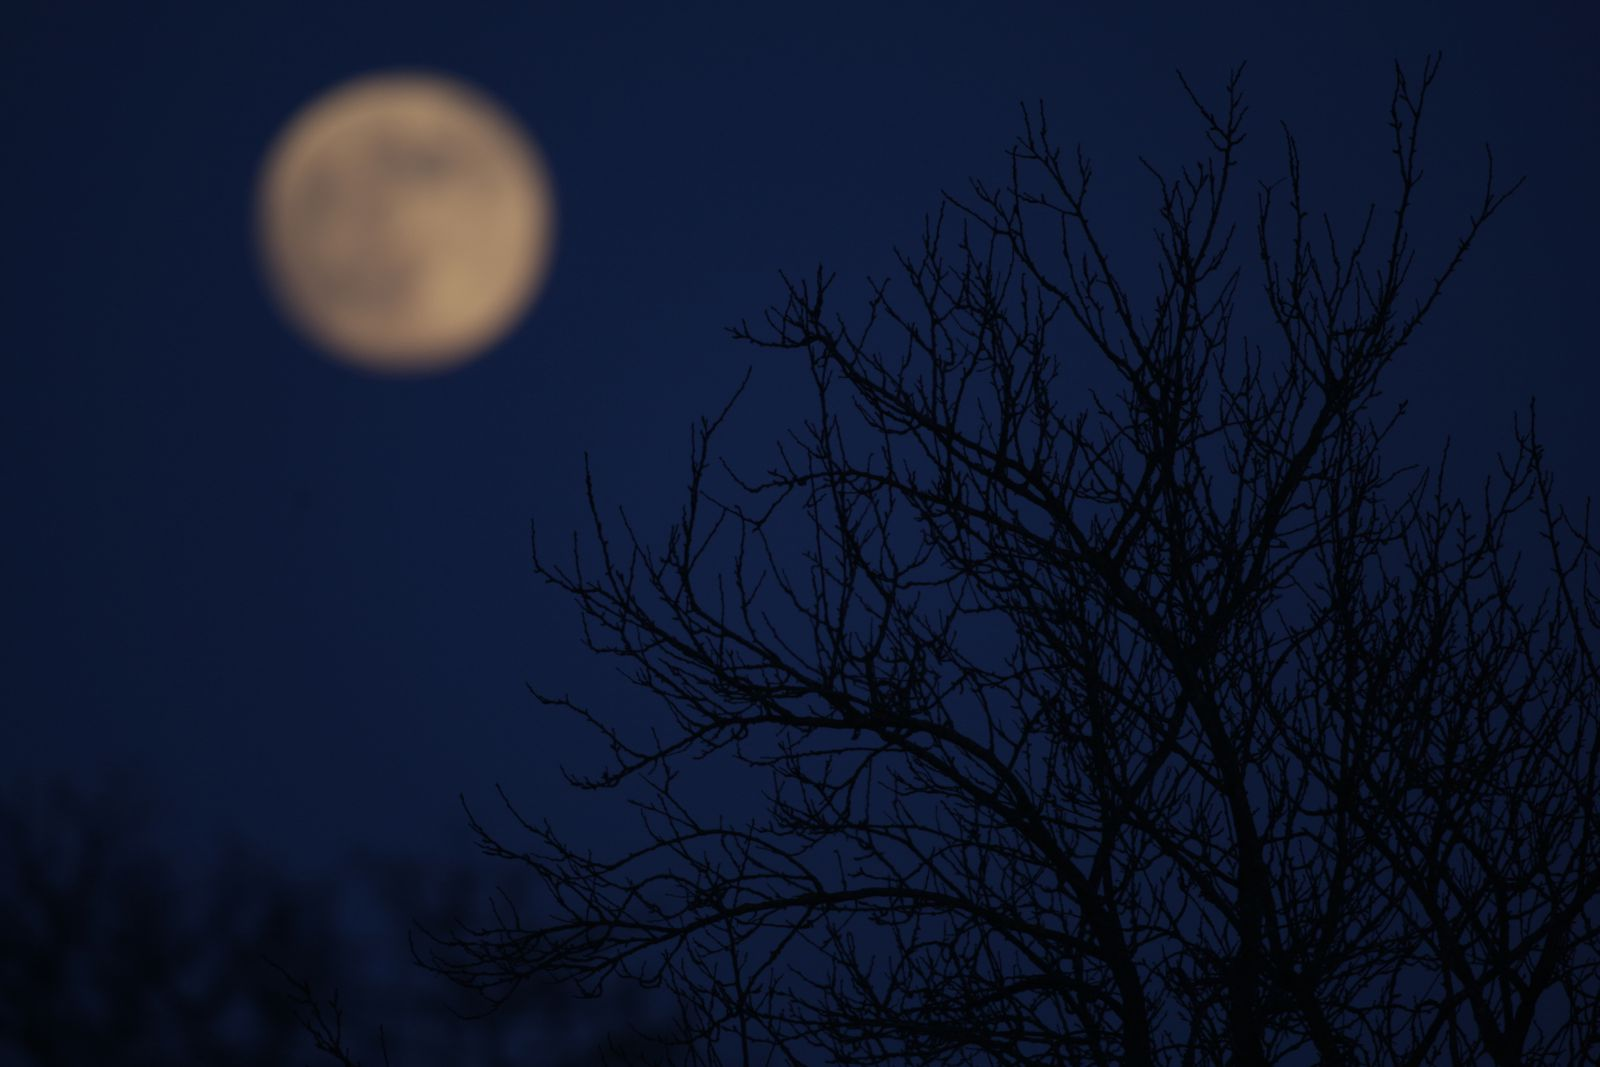 Pleine lune photo de Picardie Benoit Henrion